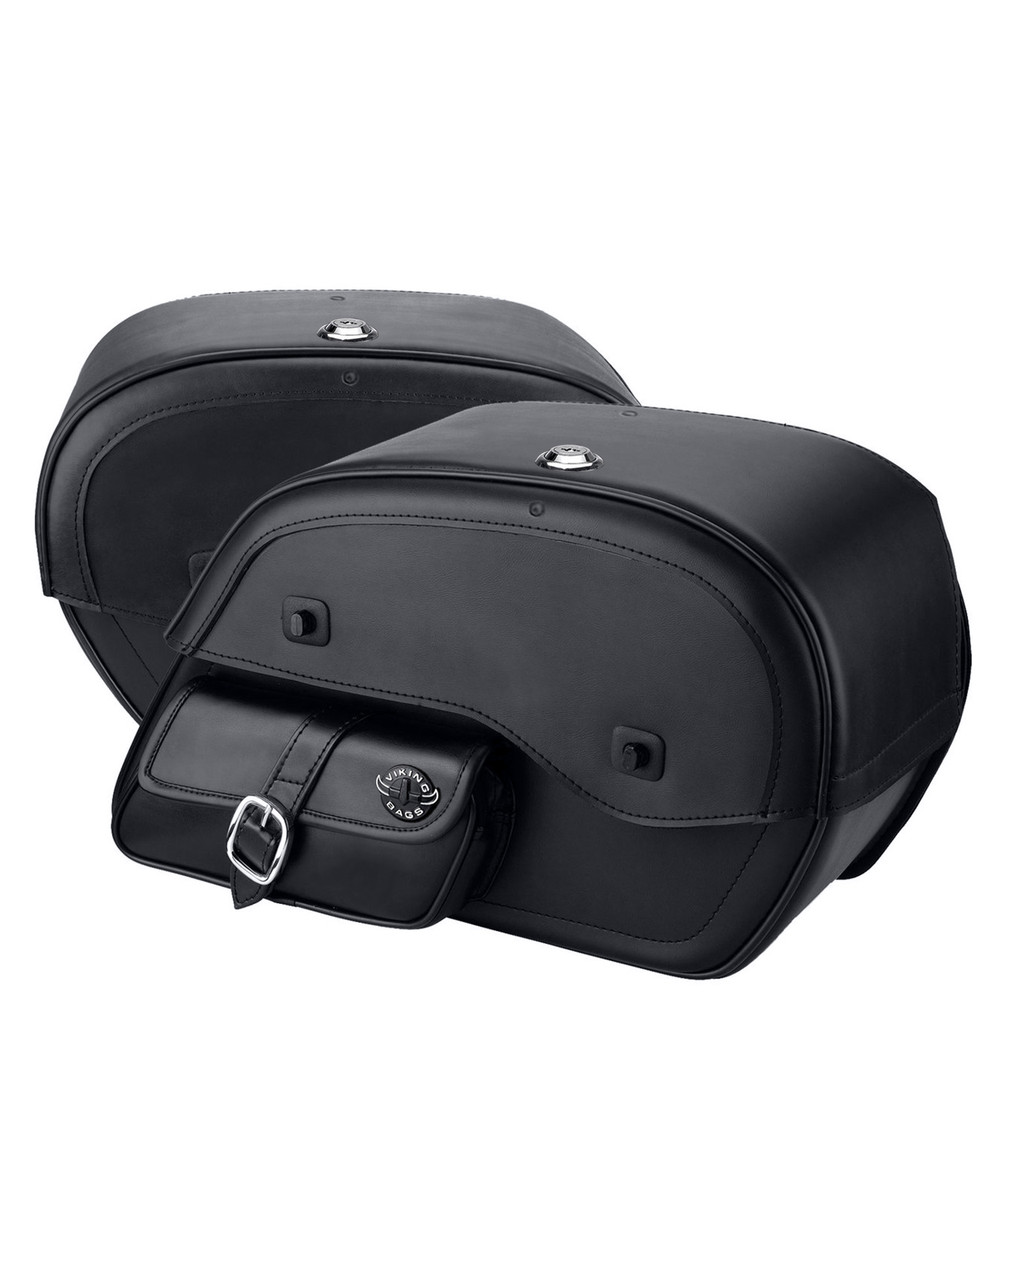 Viking Large Side Pocket Motorcycle Saddlebags For Harley Softail Custom FXSTC Both Bags View